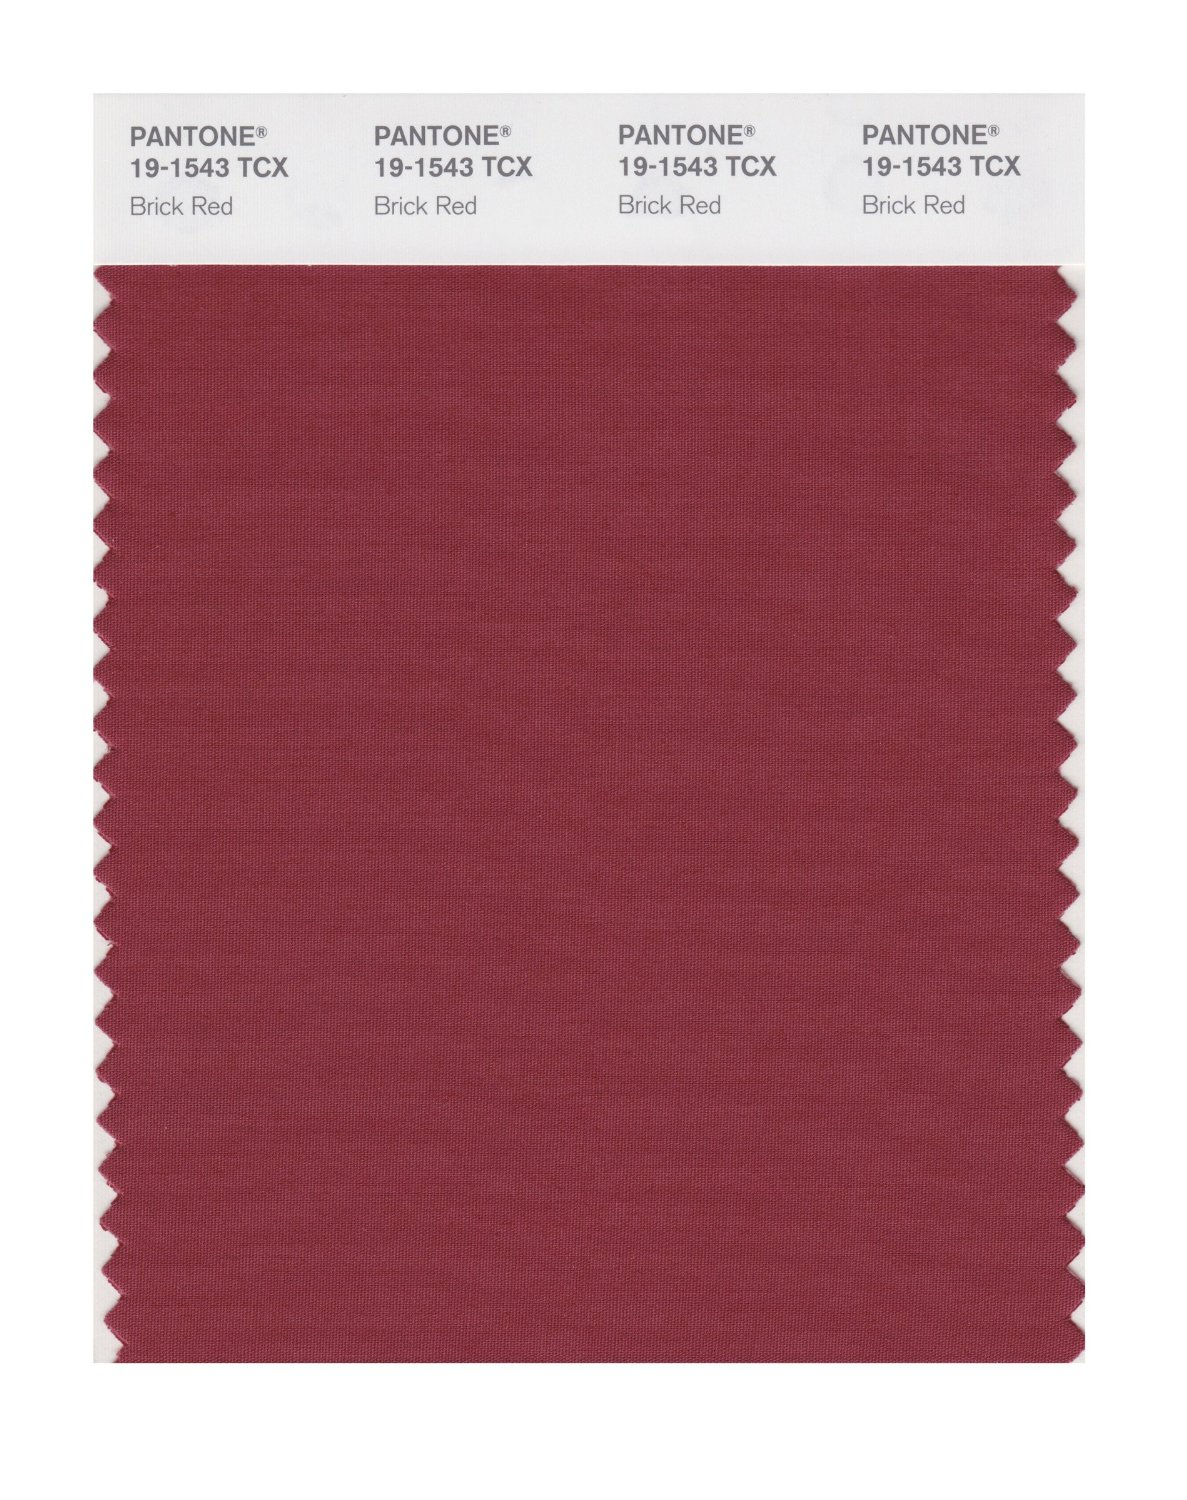 Pantone Smart Swatch 19-1543 Brick Red